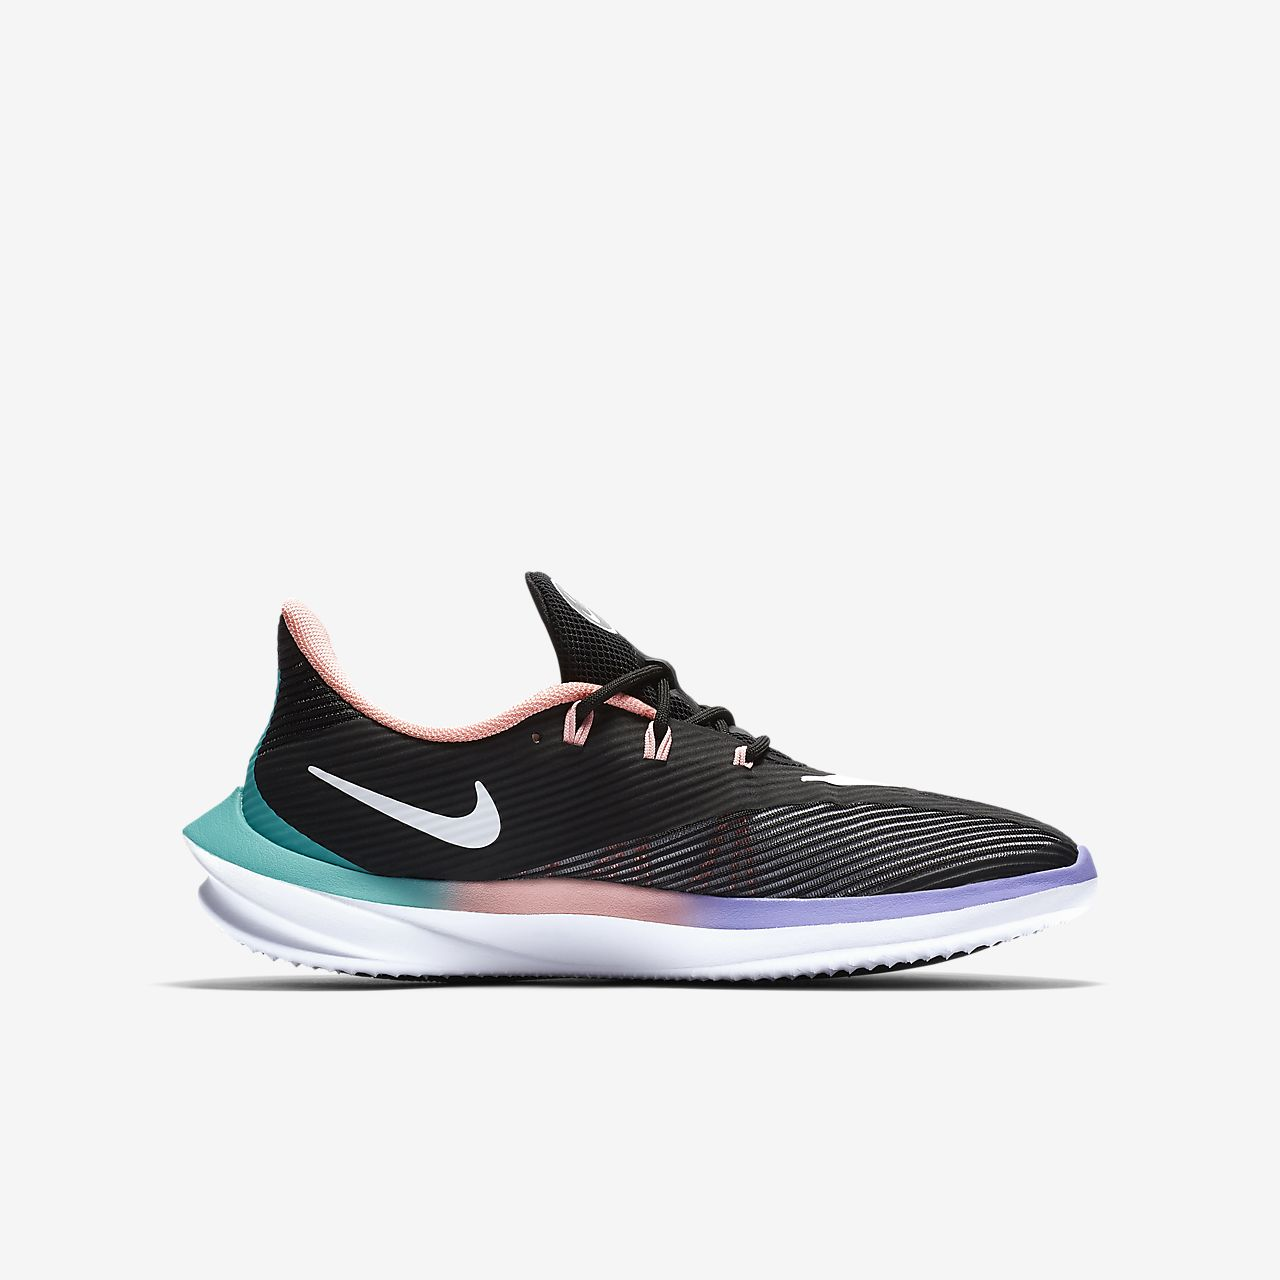 4978ce2c6d1 Nike Future Speed Little Big Kids  Running Shoe. Nike.com